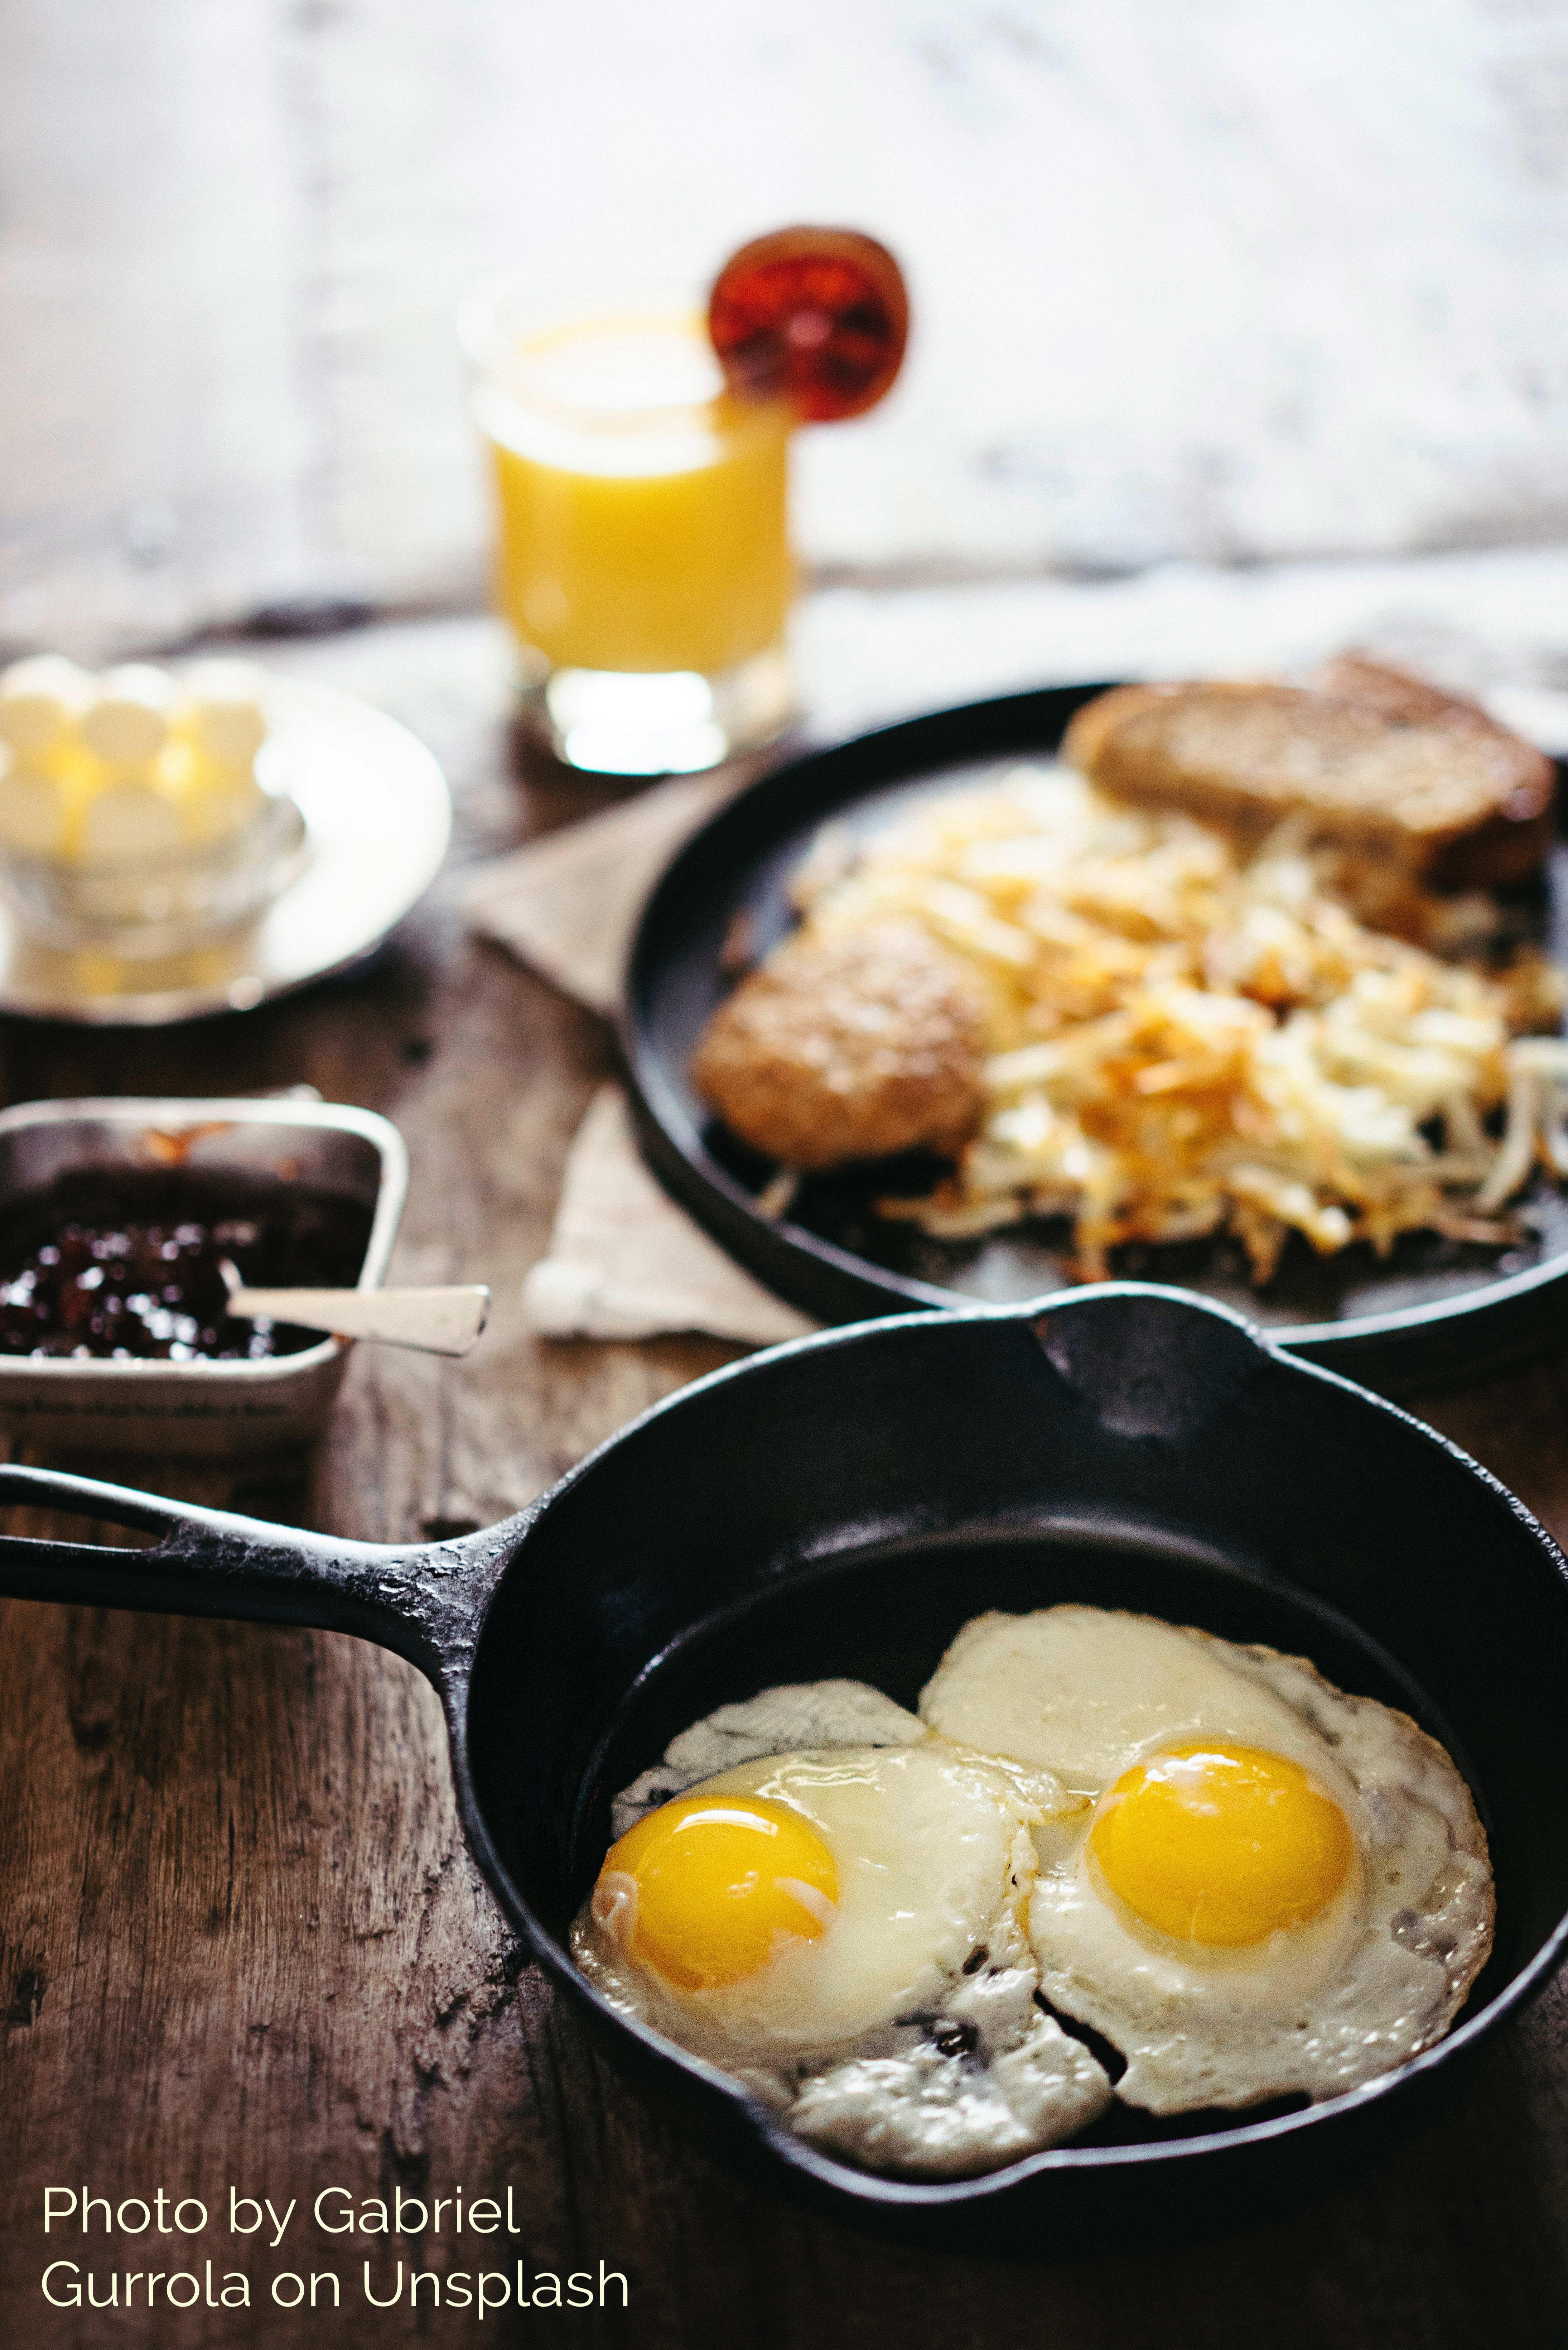 Chef's Breakfast Special